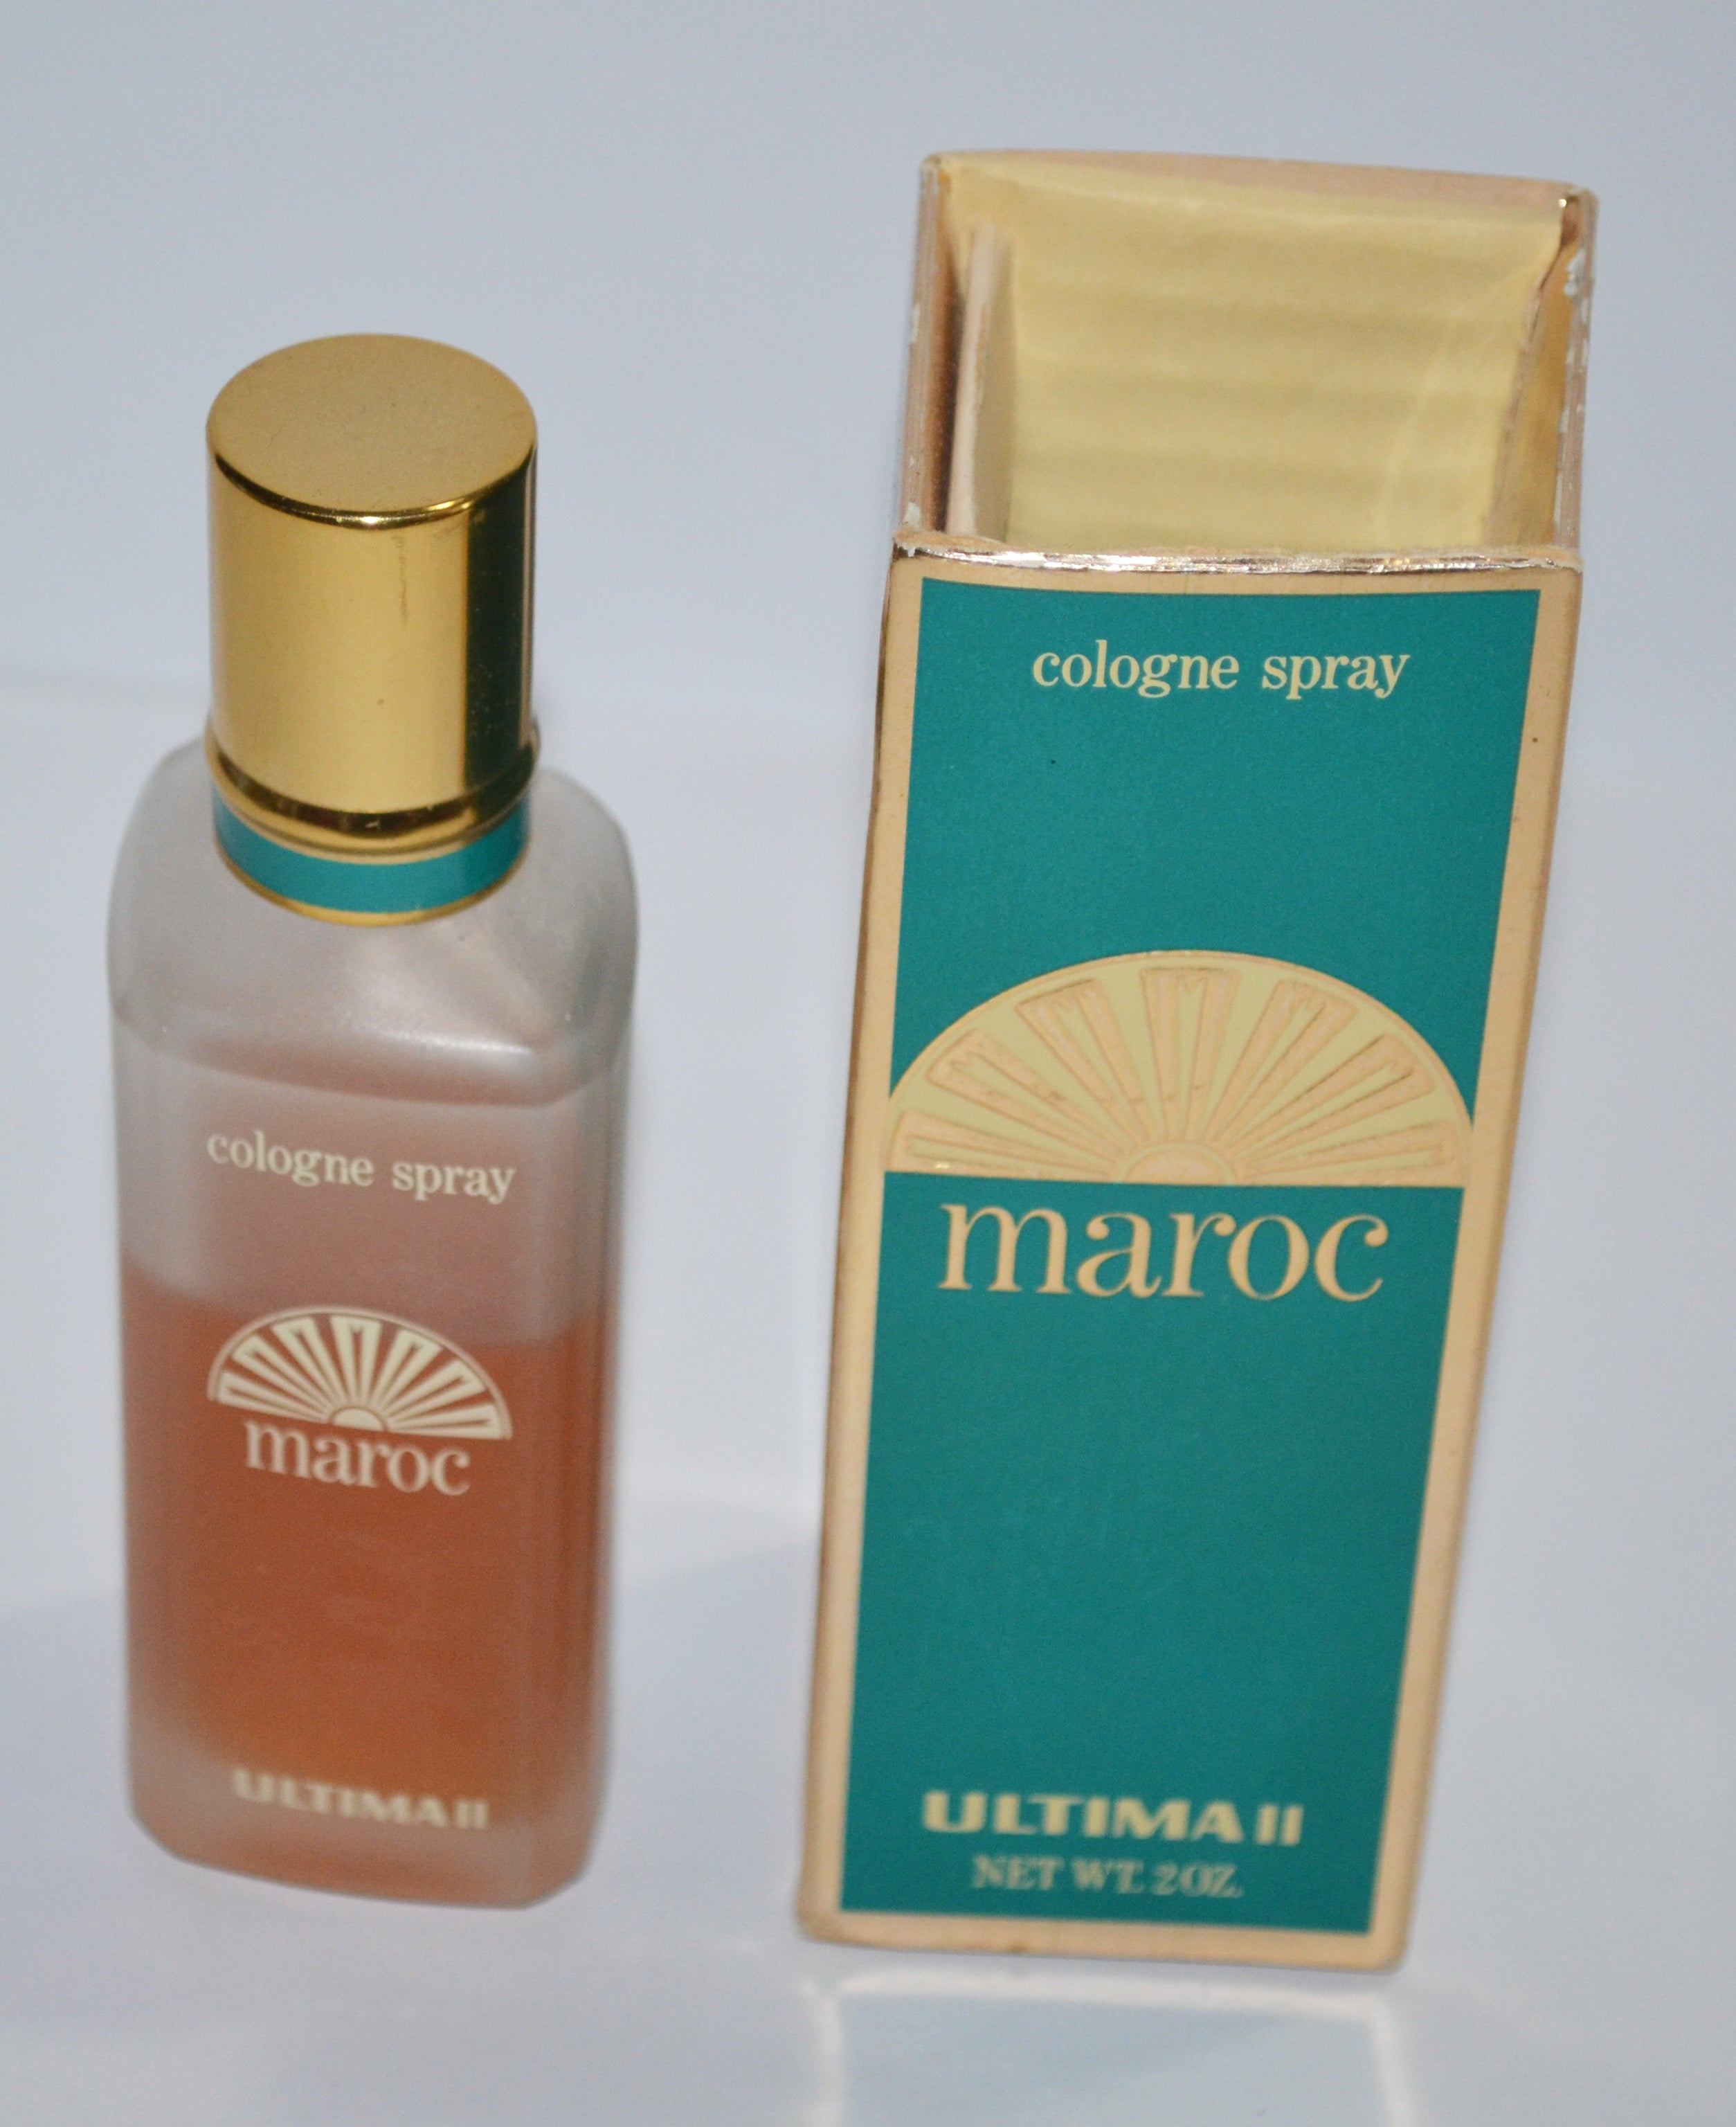 Vintage Maroc Cologne Spray By Ultima II - Charles Revson